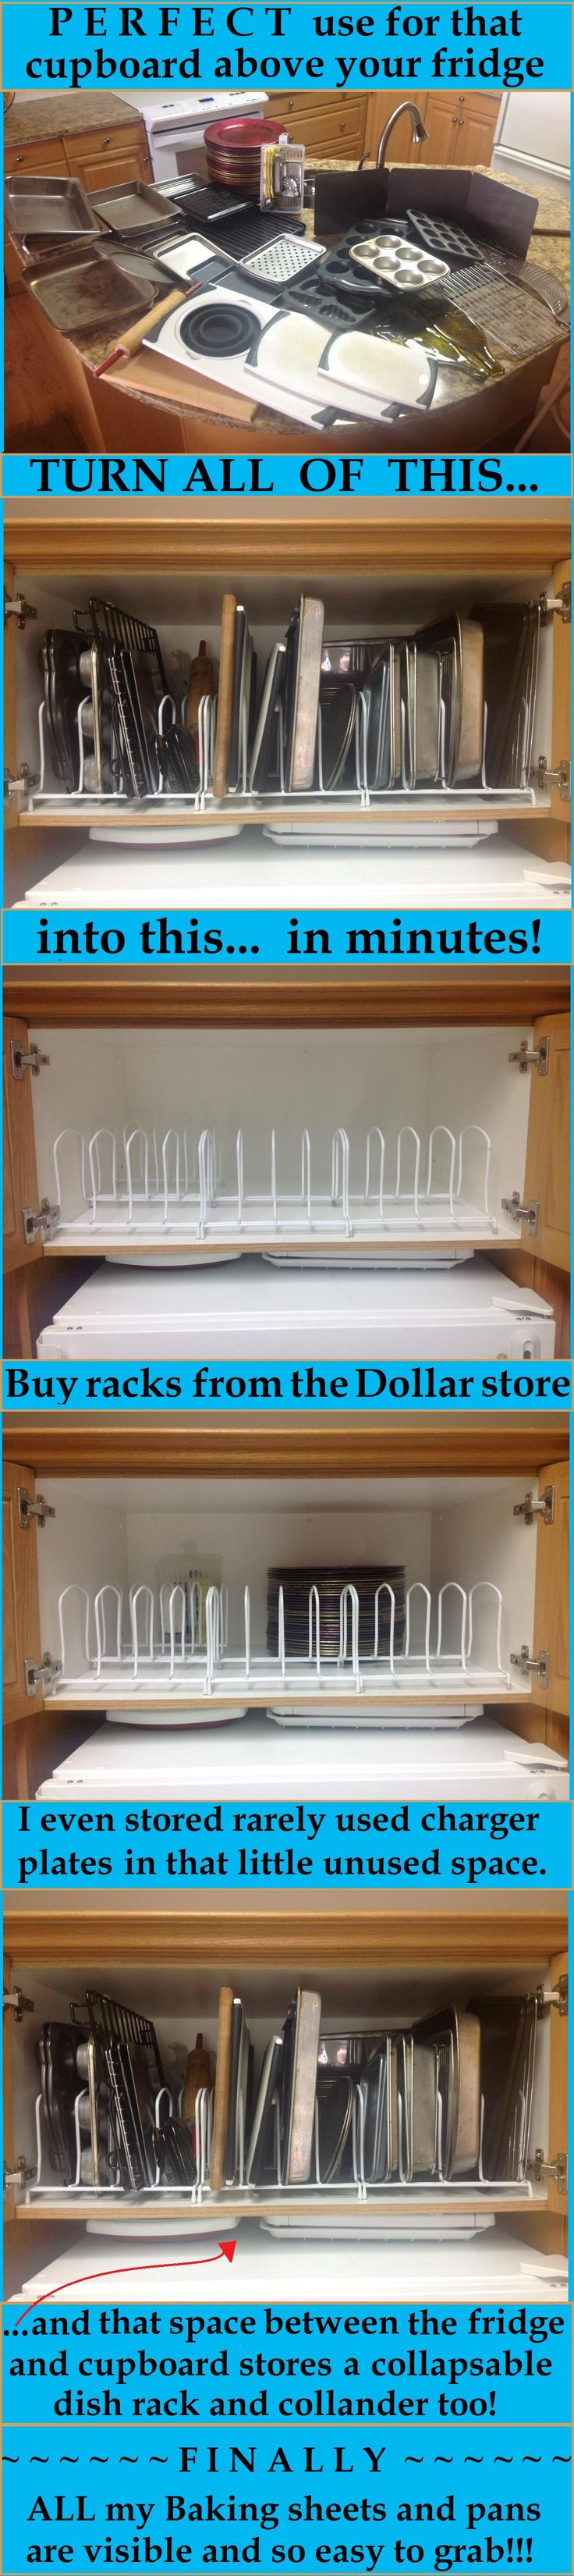 asics gel lyte 3 mustard Dollar store dish racks to separate the pans and lids in a cabinet above the fridge